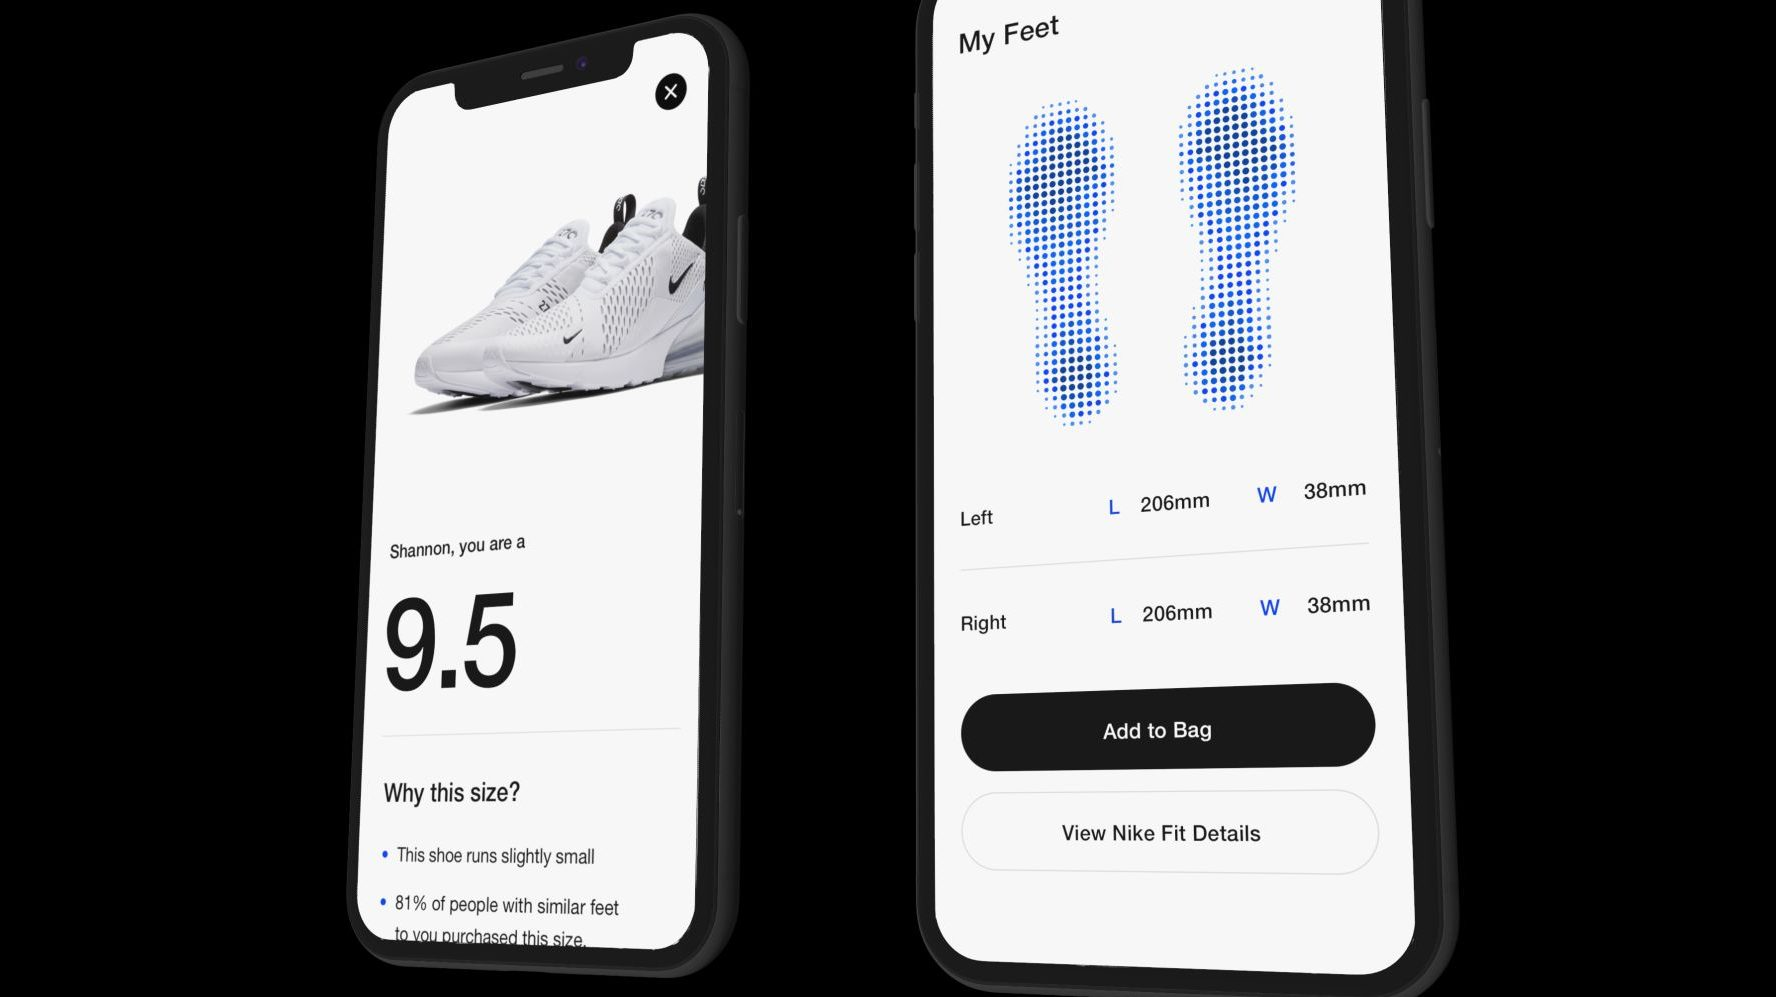 iPhone app will use AR to fit shoes